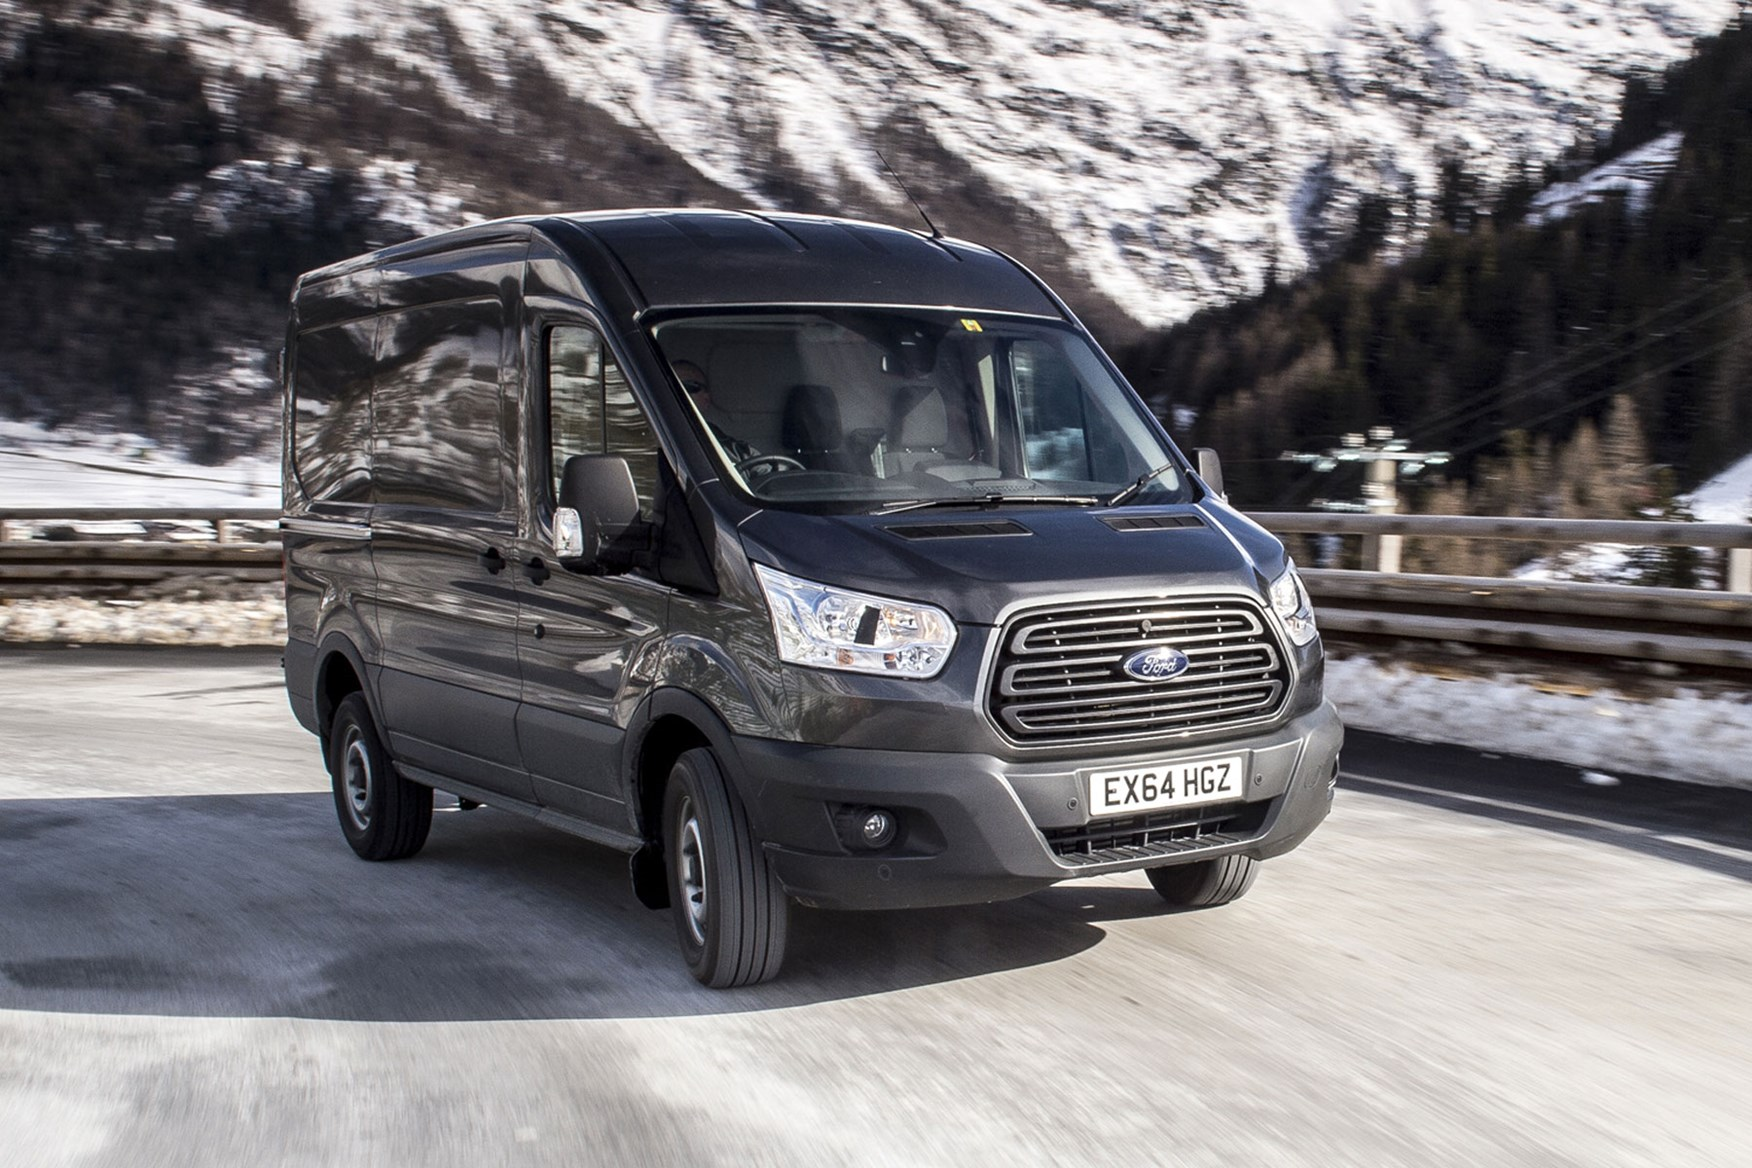 Ford Transit AWD review - front view, driving on icy road